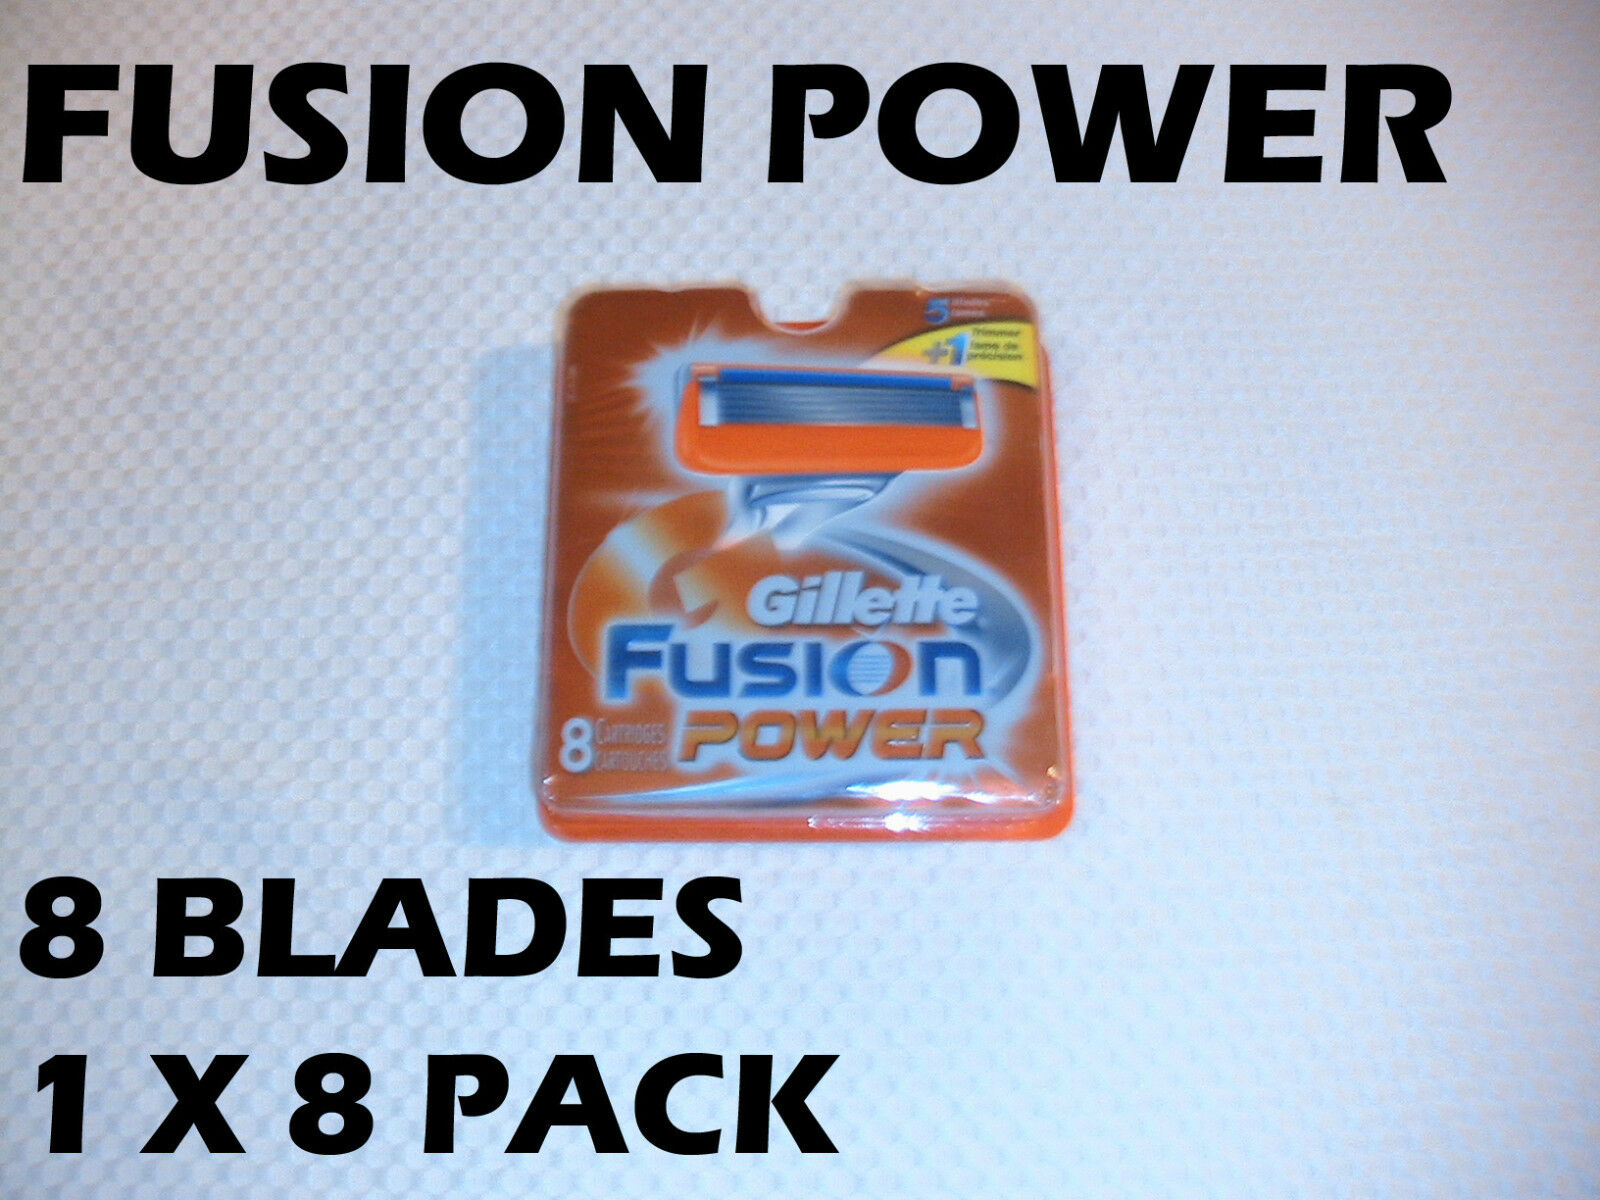 Gillette Fusion Power - 8 Count (1 X 8 Pack)